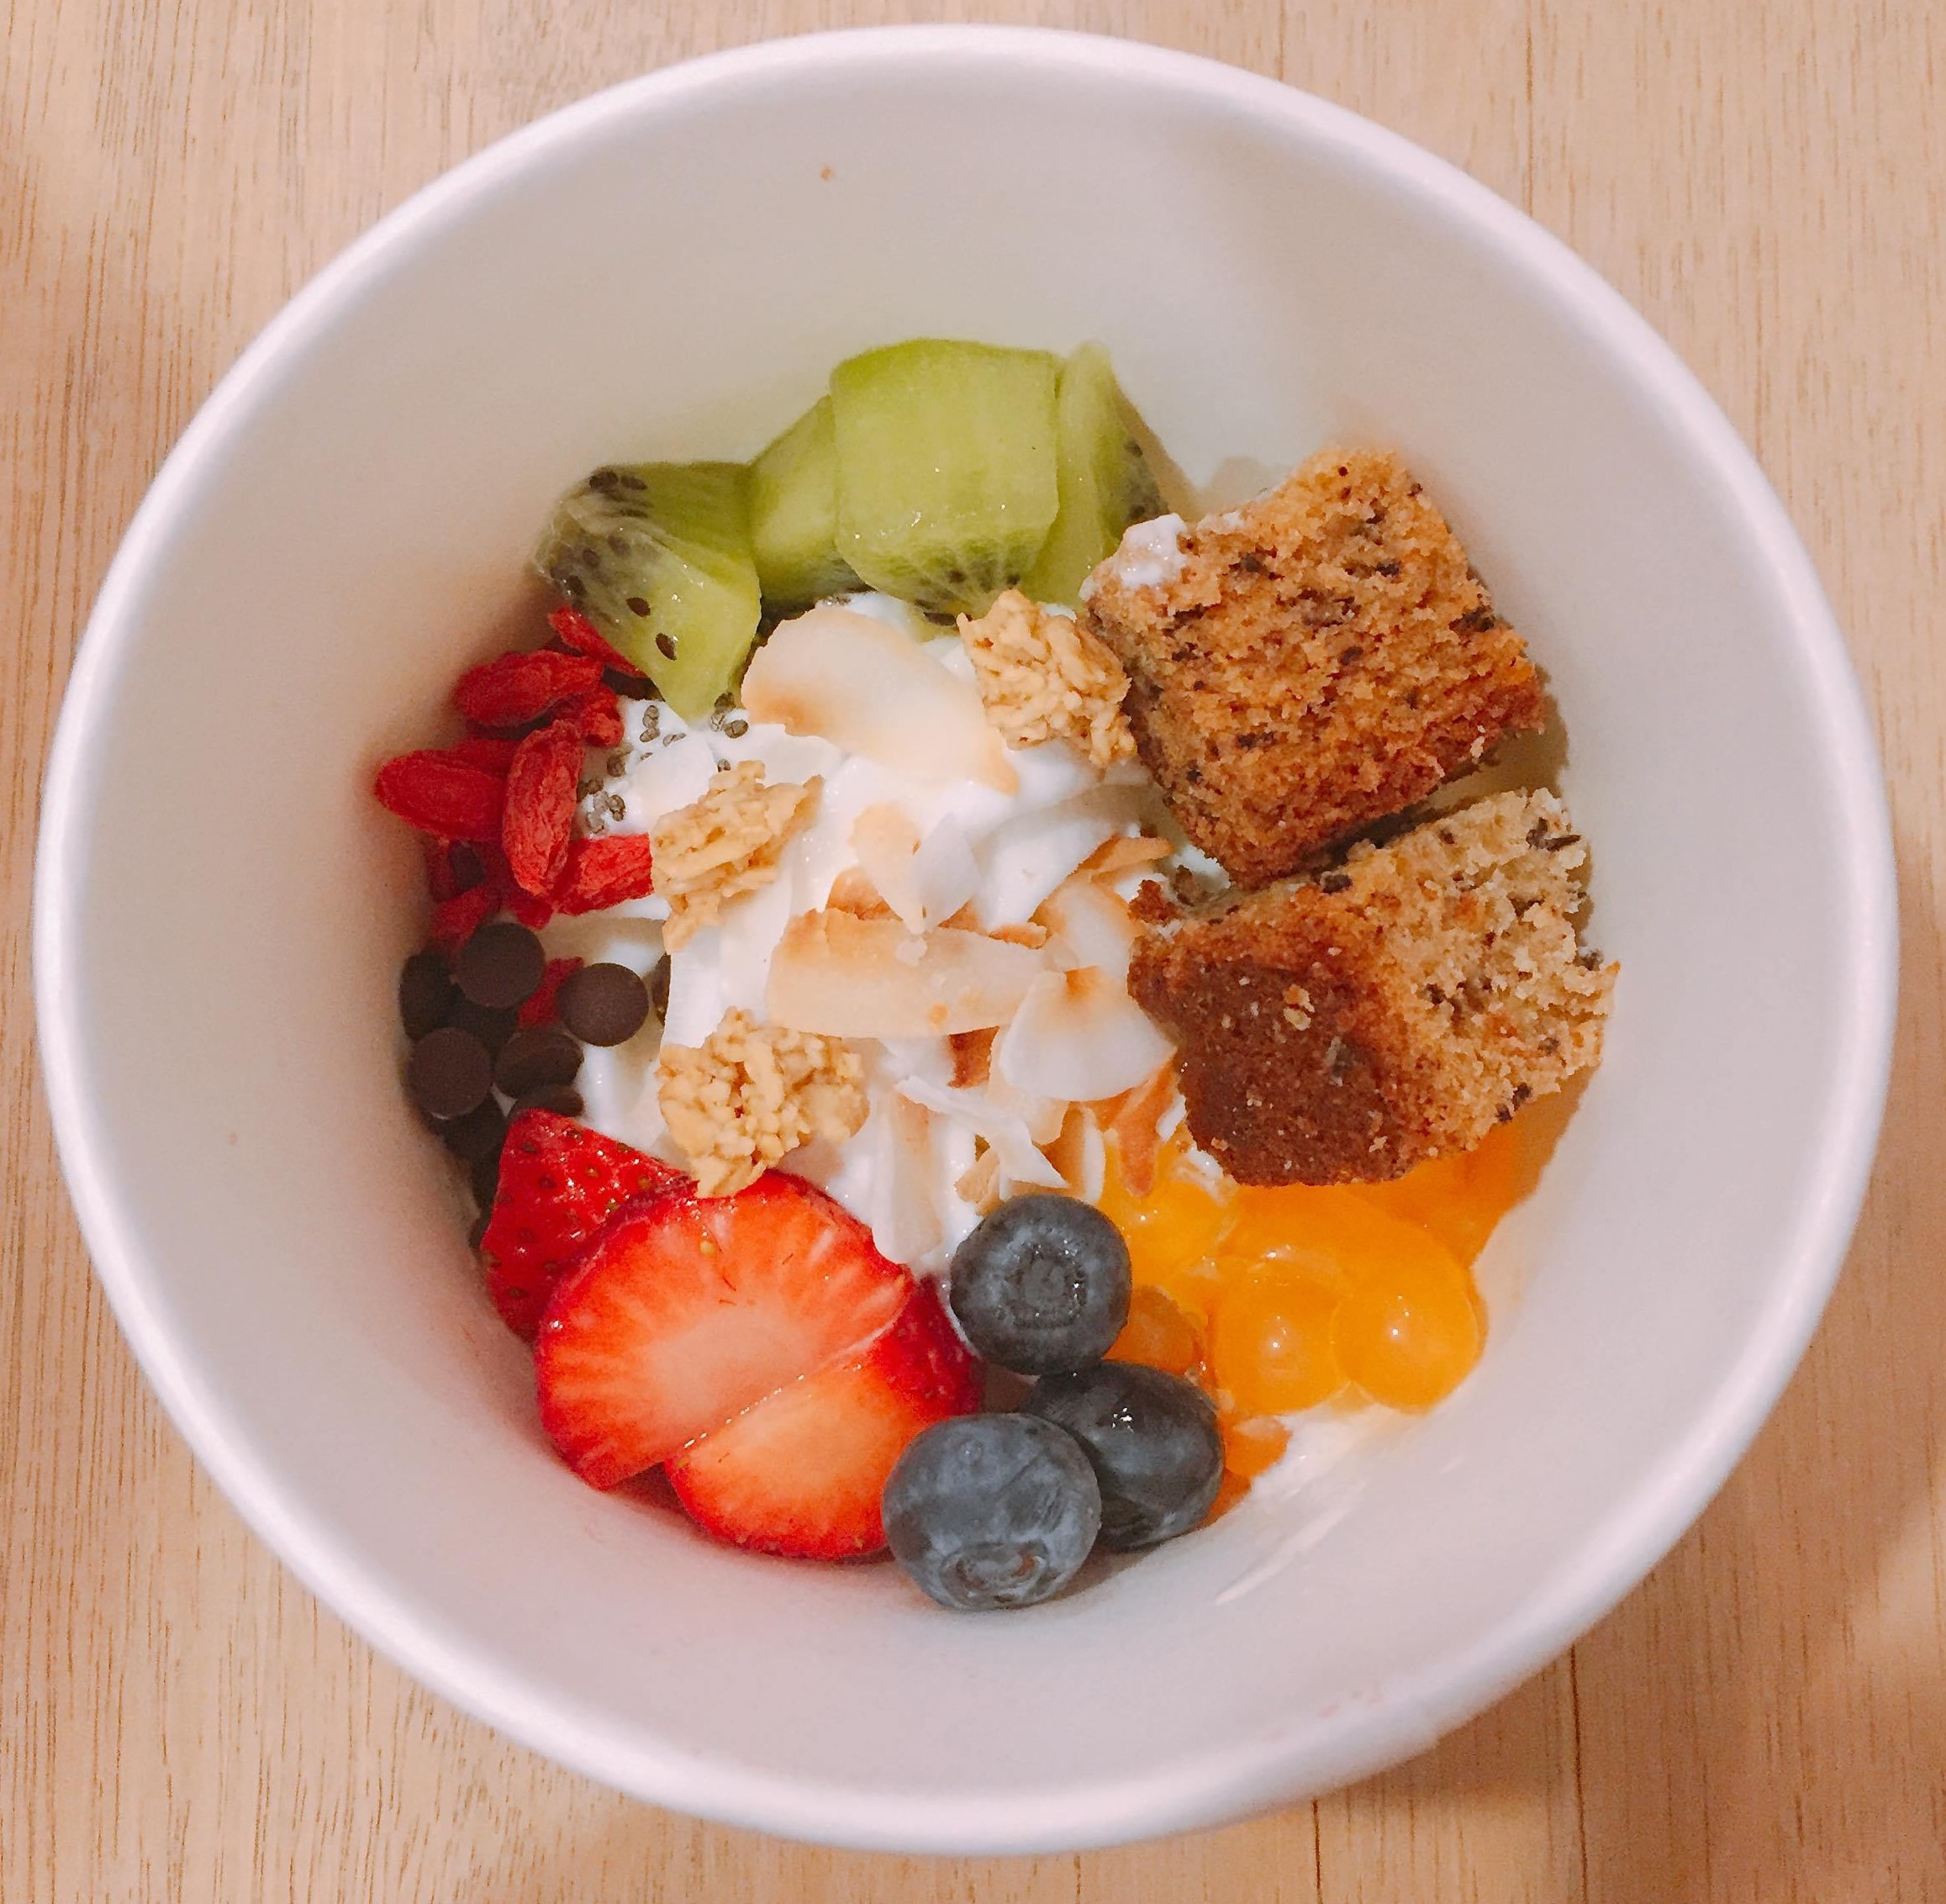 Frozen Yogurt with NO SUGAR. Find out where!!